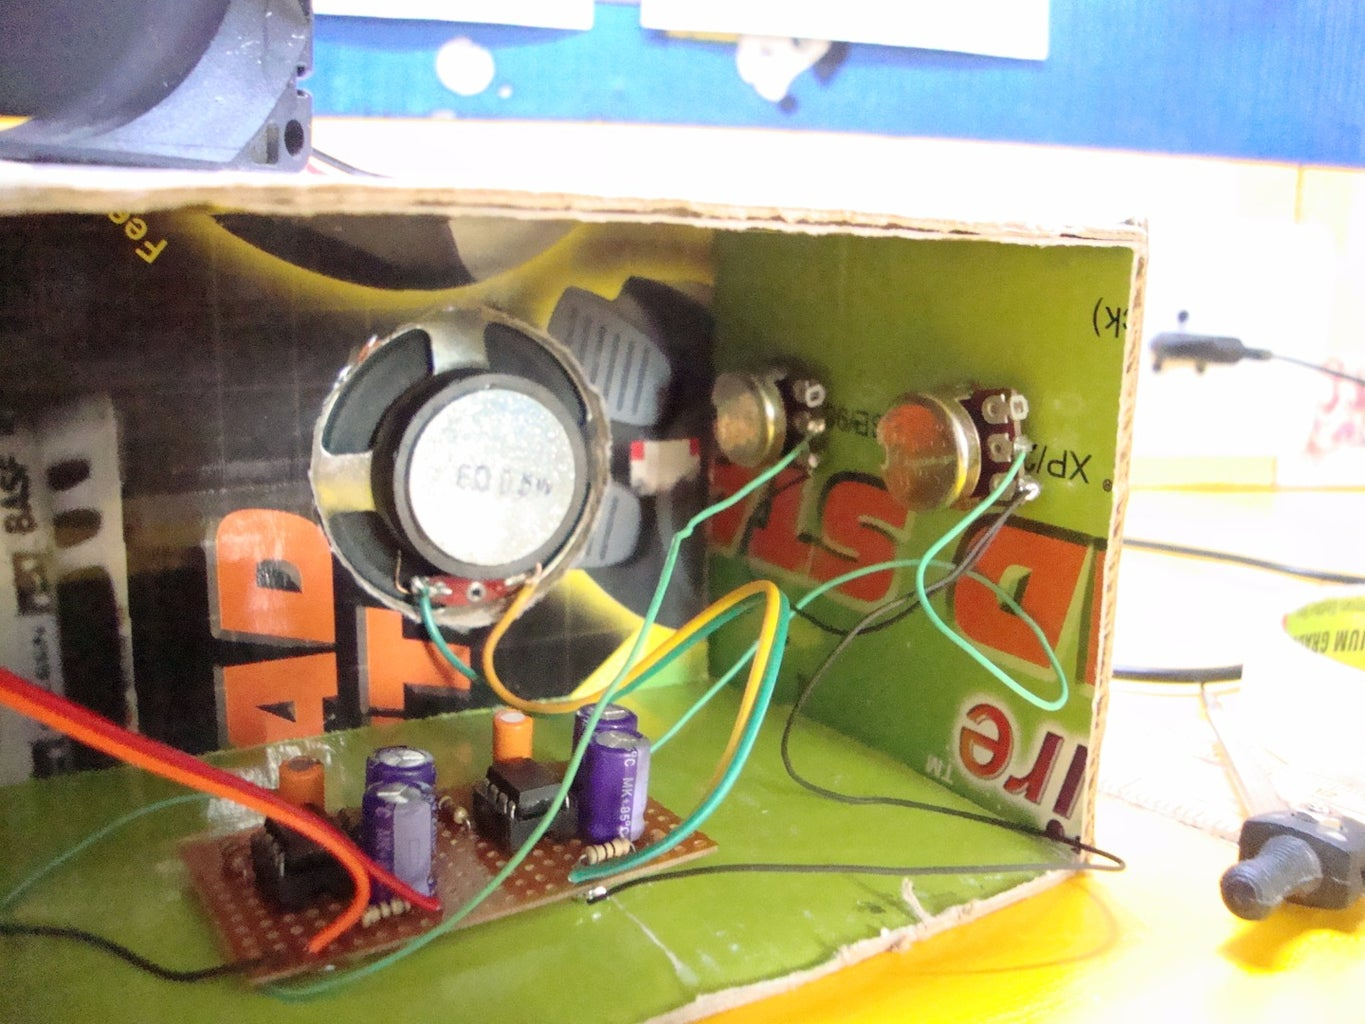 Install and Connect the Potentiometers